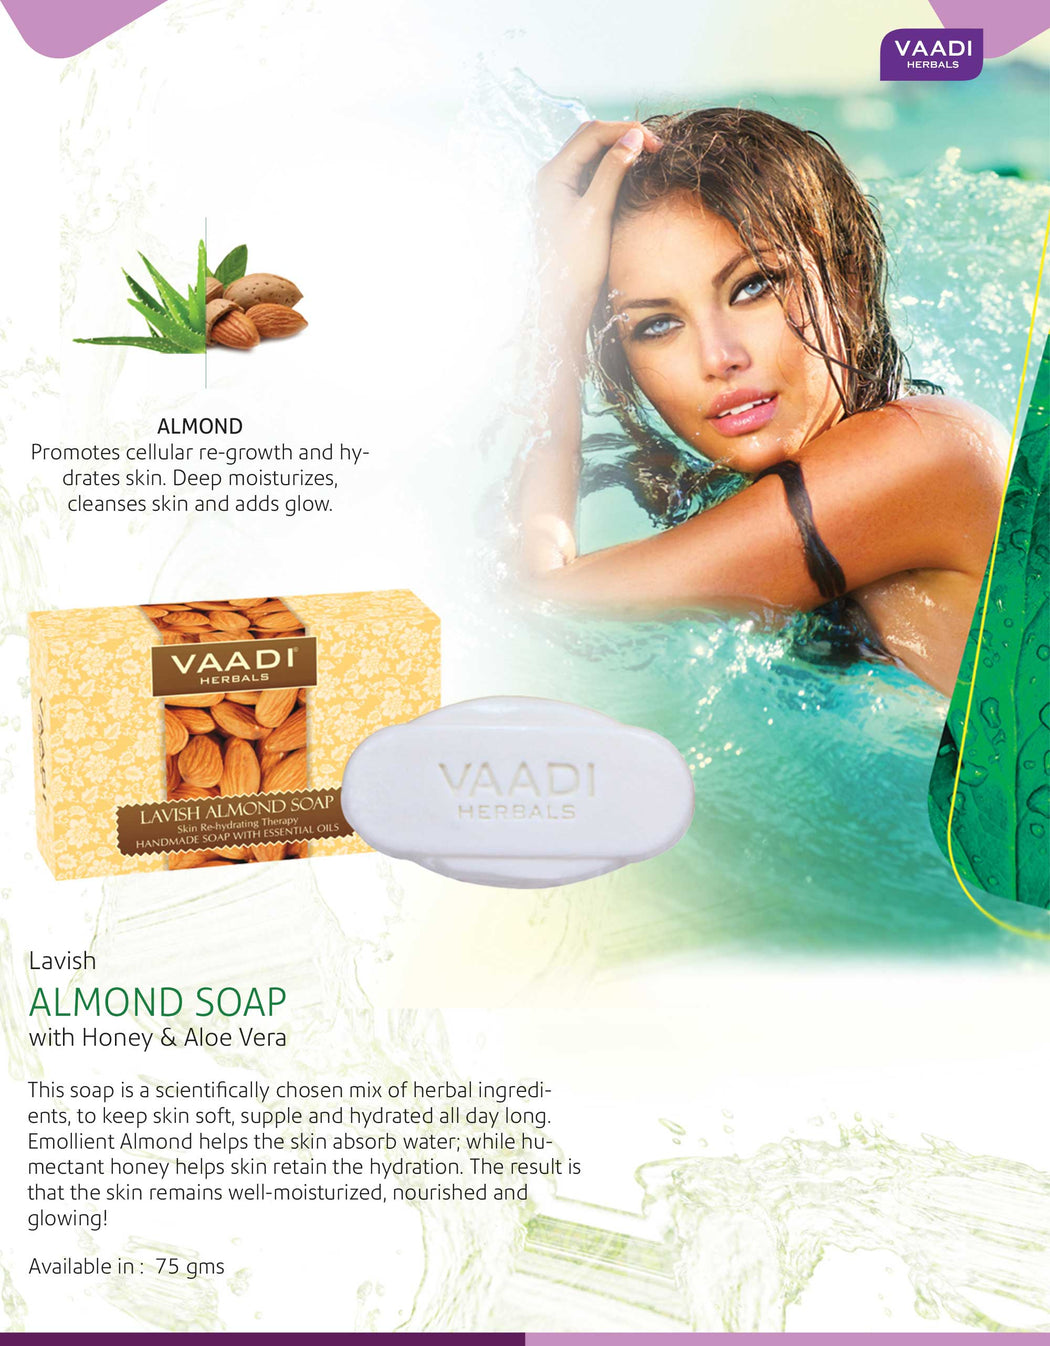 Rehydrating Organic Lavish Almond Soap with Honey & Aloe Vera Extract (6 x 75 gms/2.7 oz)